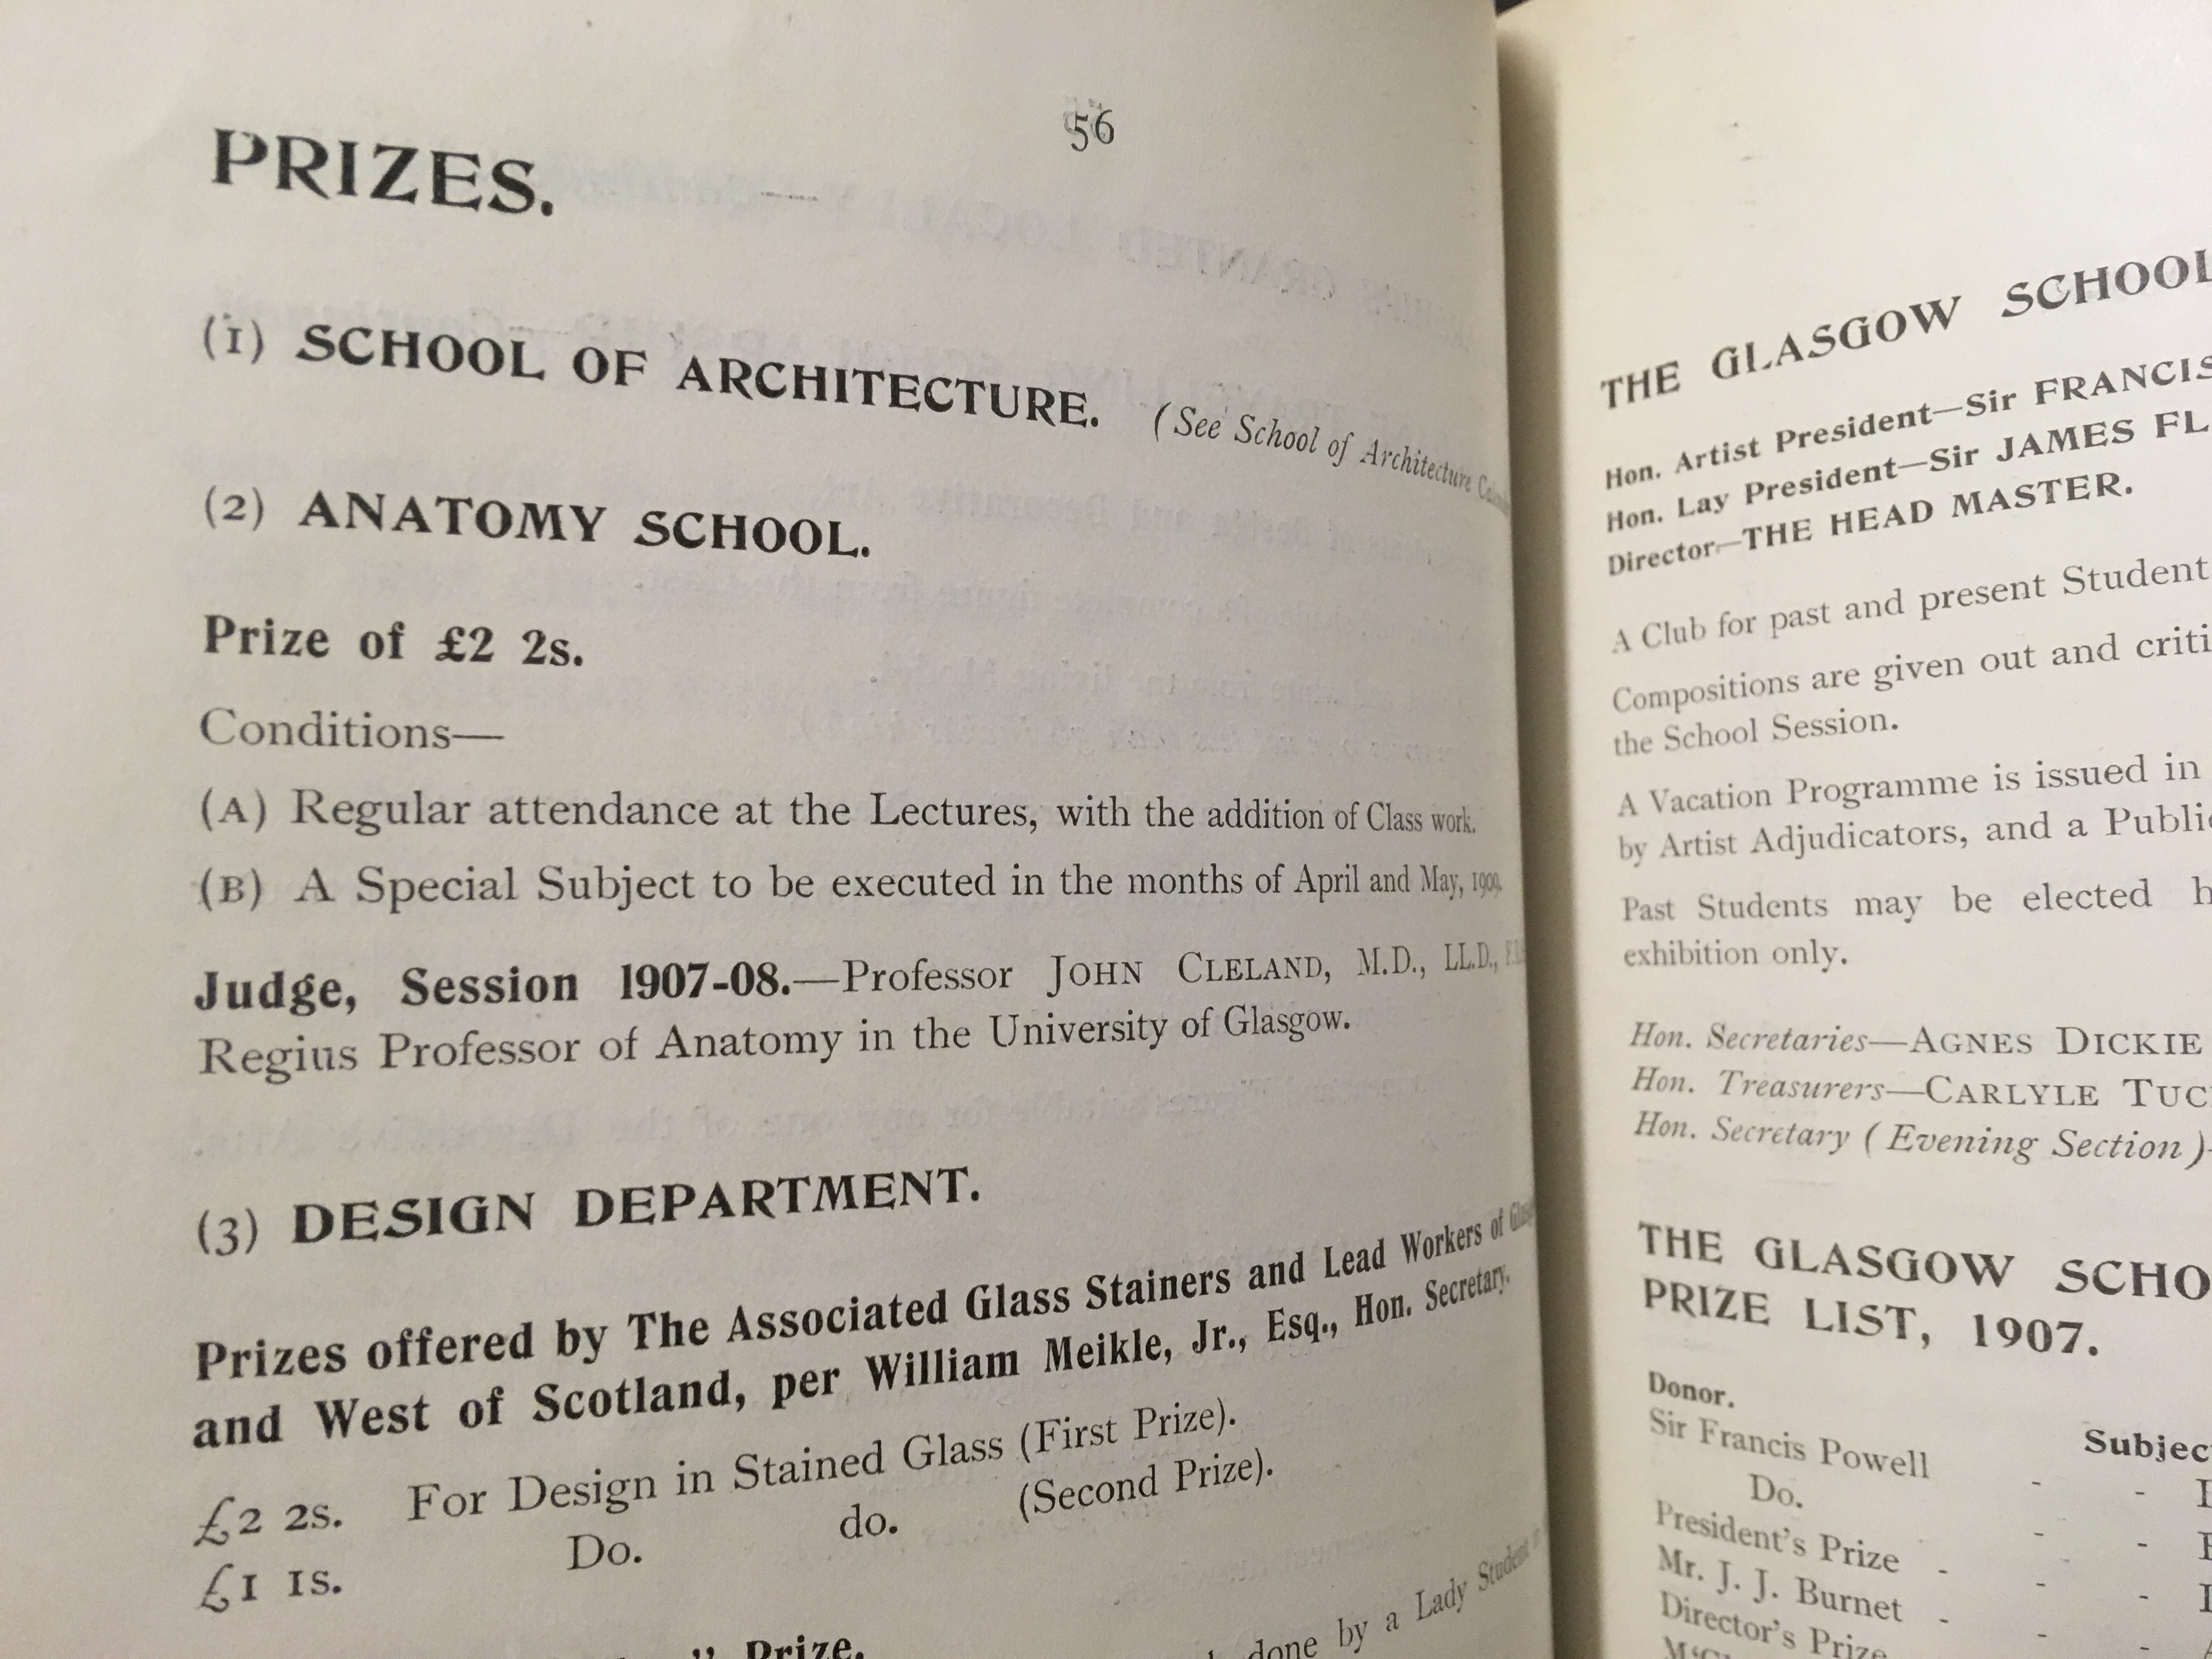 Interested in researching the history of prize winners? Why not visit the Archives and Collections and research them from our Prospectuses and Annual Reports. (GSAA/GOV/1 and GSAA/REG/1)